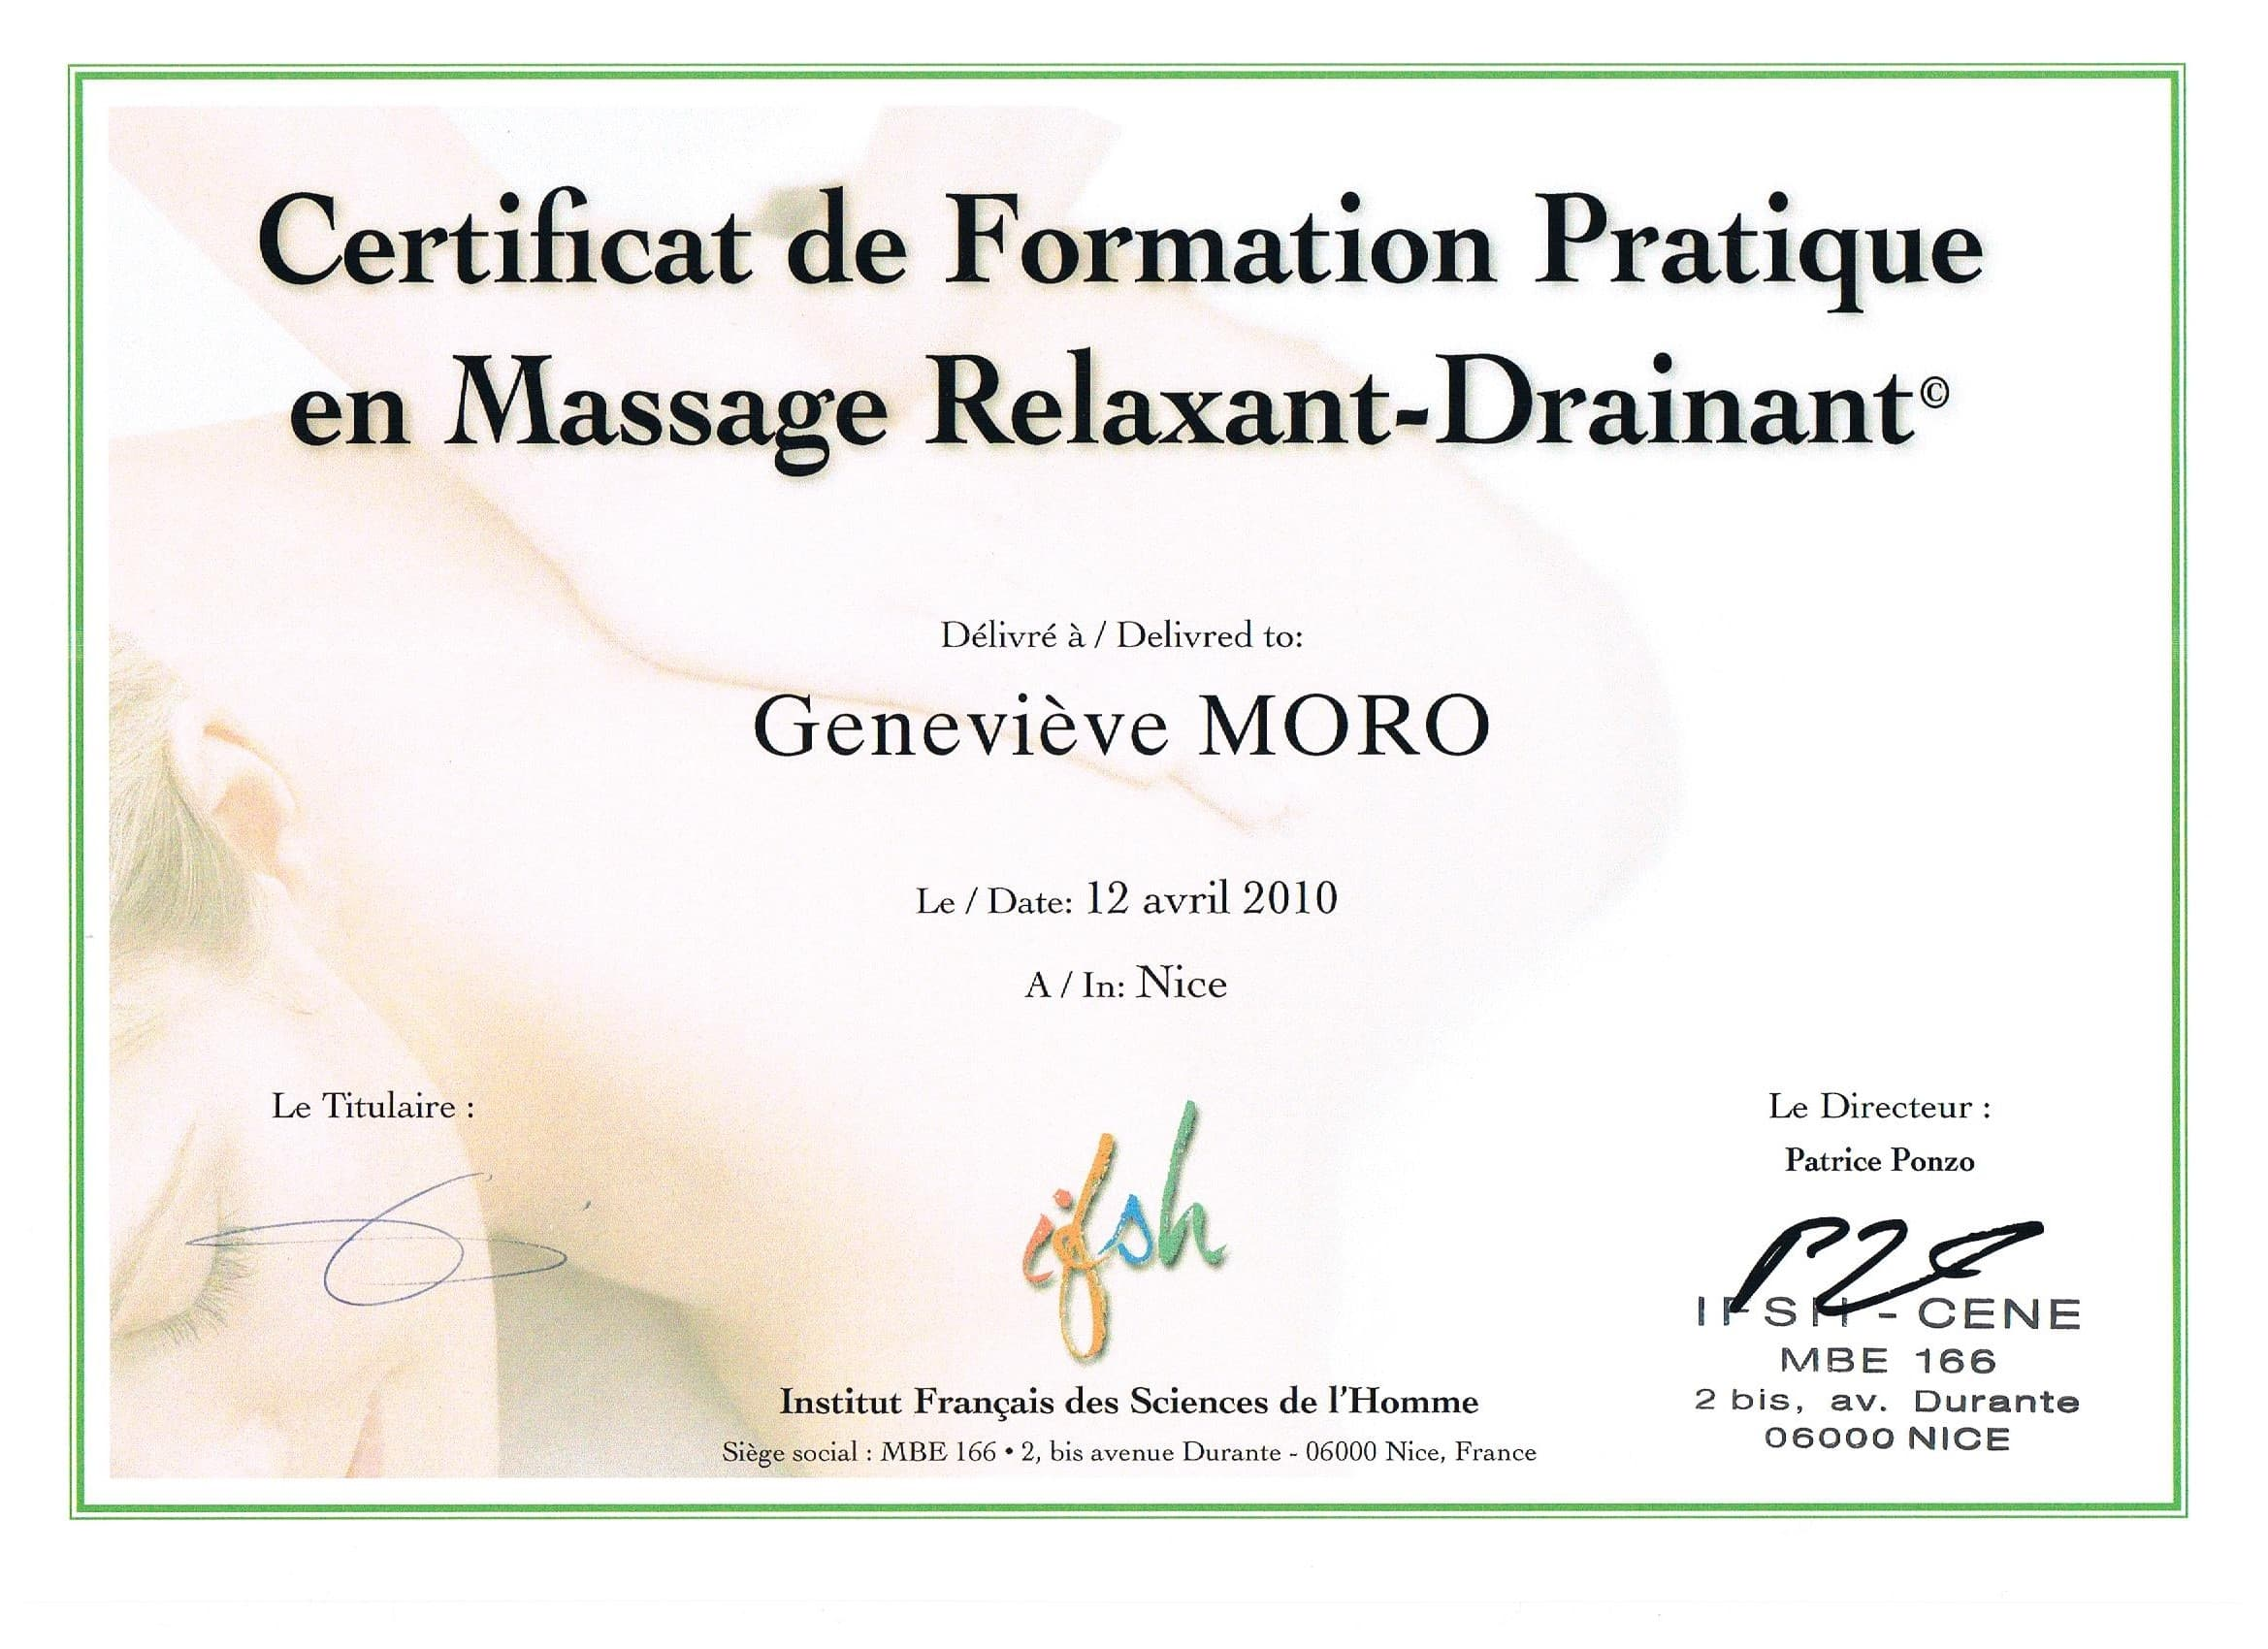 Diplome Massage Relaxant Drainant